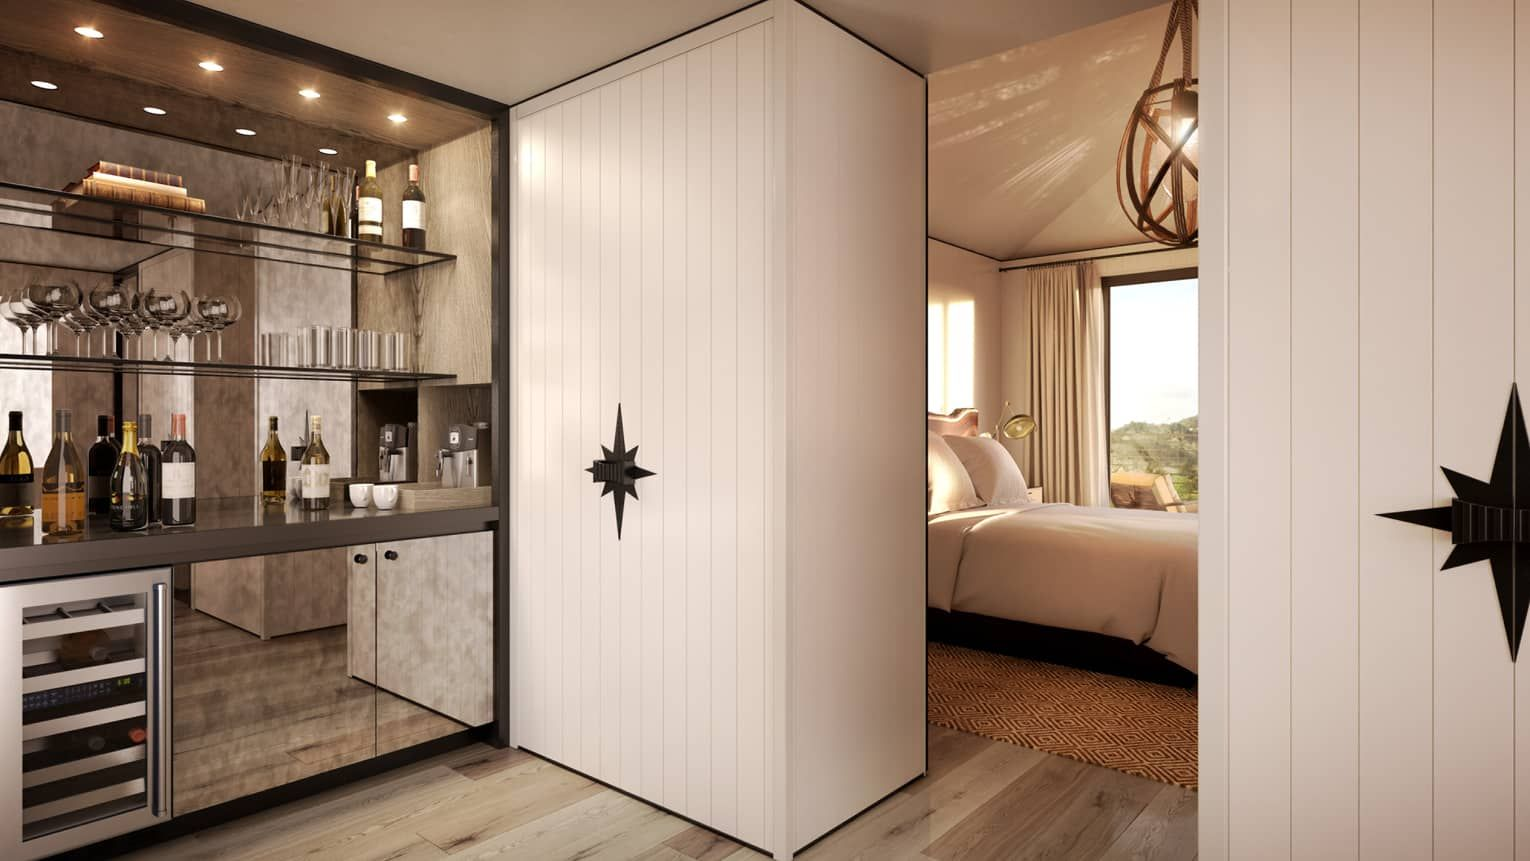 Four Seasons Napa Valley One bedroom, Luxury hotel, Two